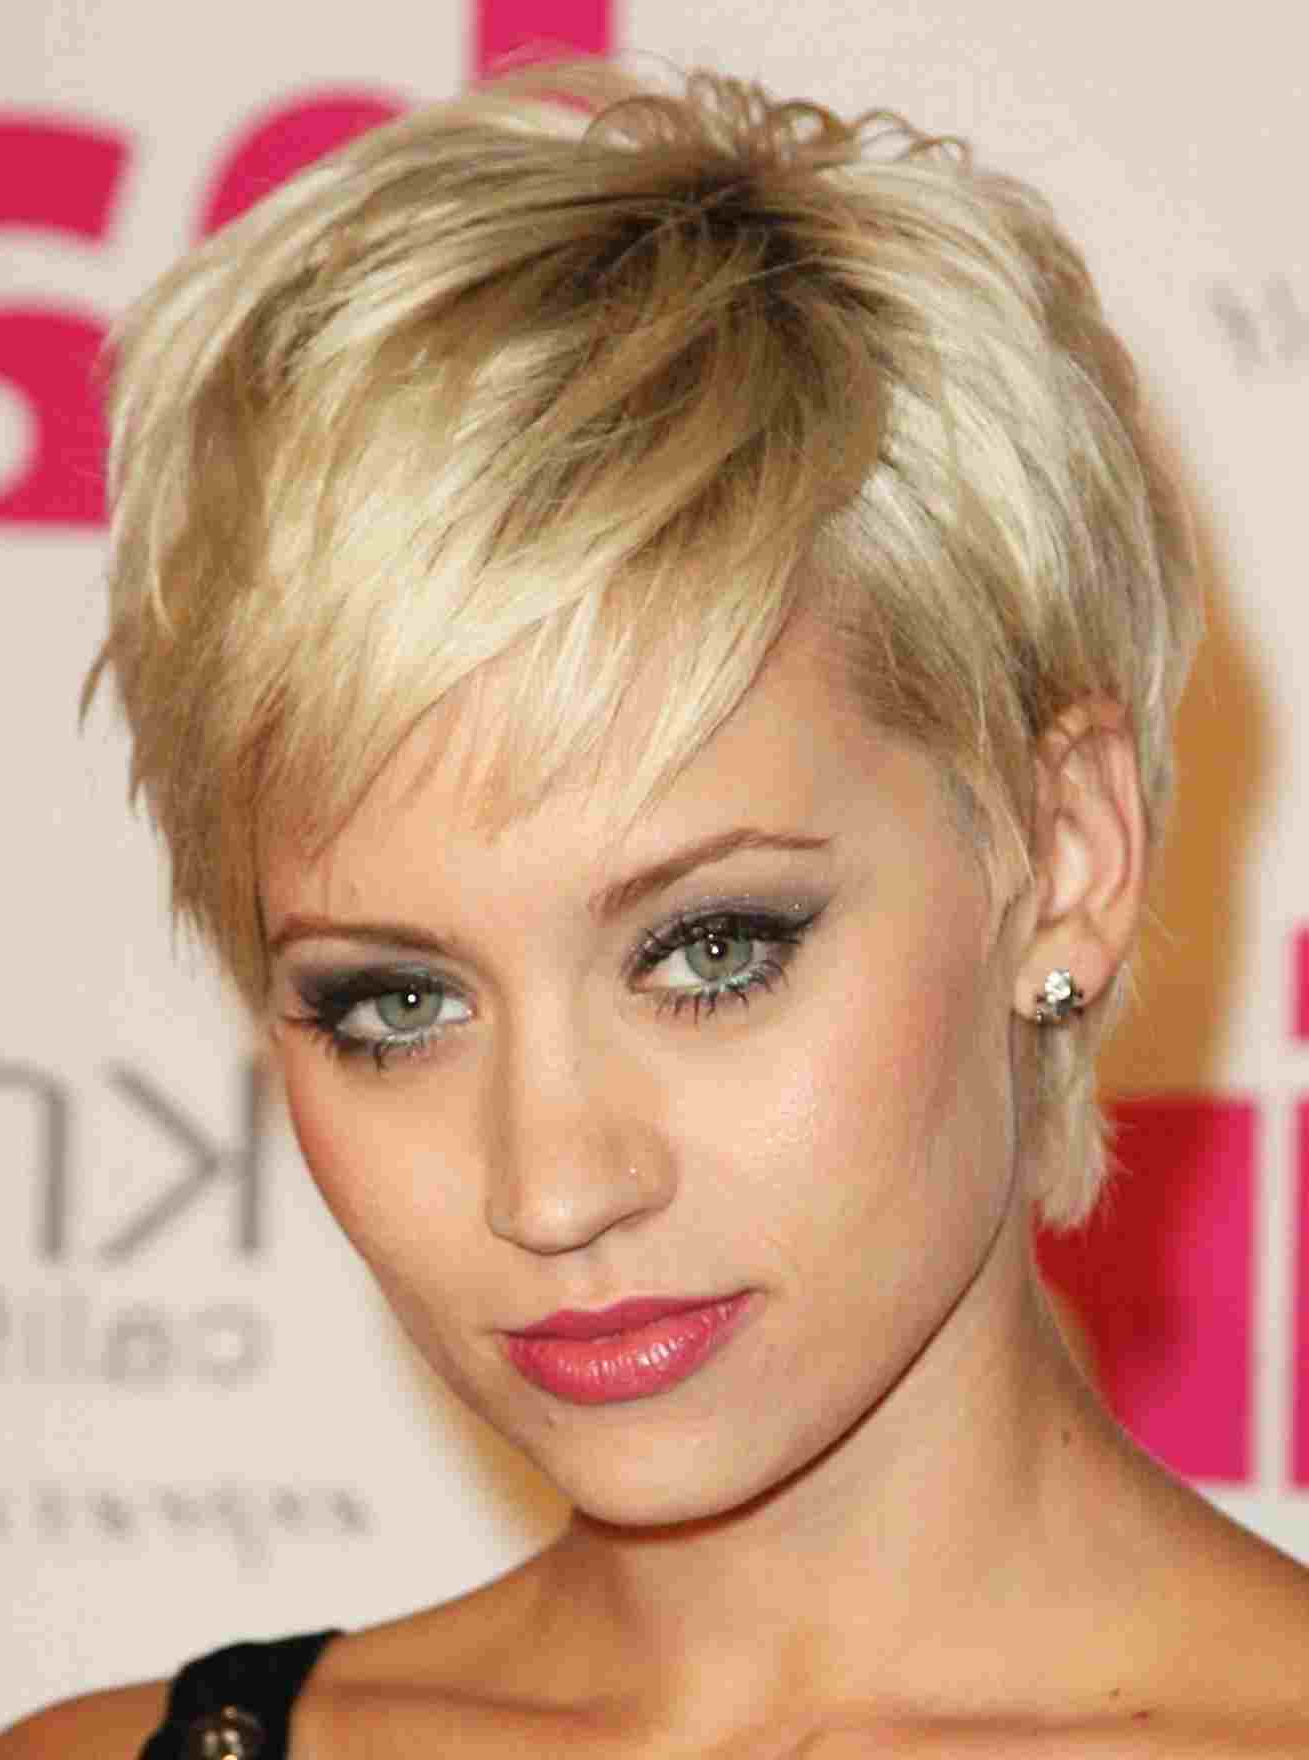 Bob Short Hairstyles With Bangs For Women 2012 Hairstyle And Glasses Inside Short Haircuts For People With Glasses (View 18 of 25)